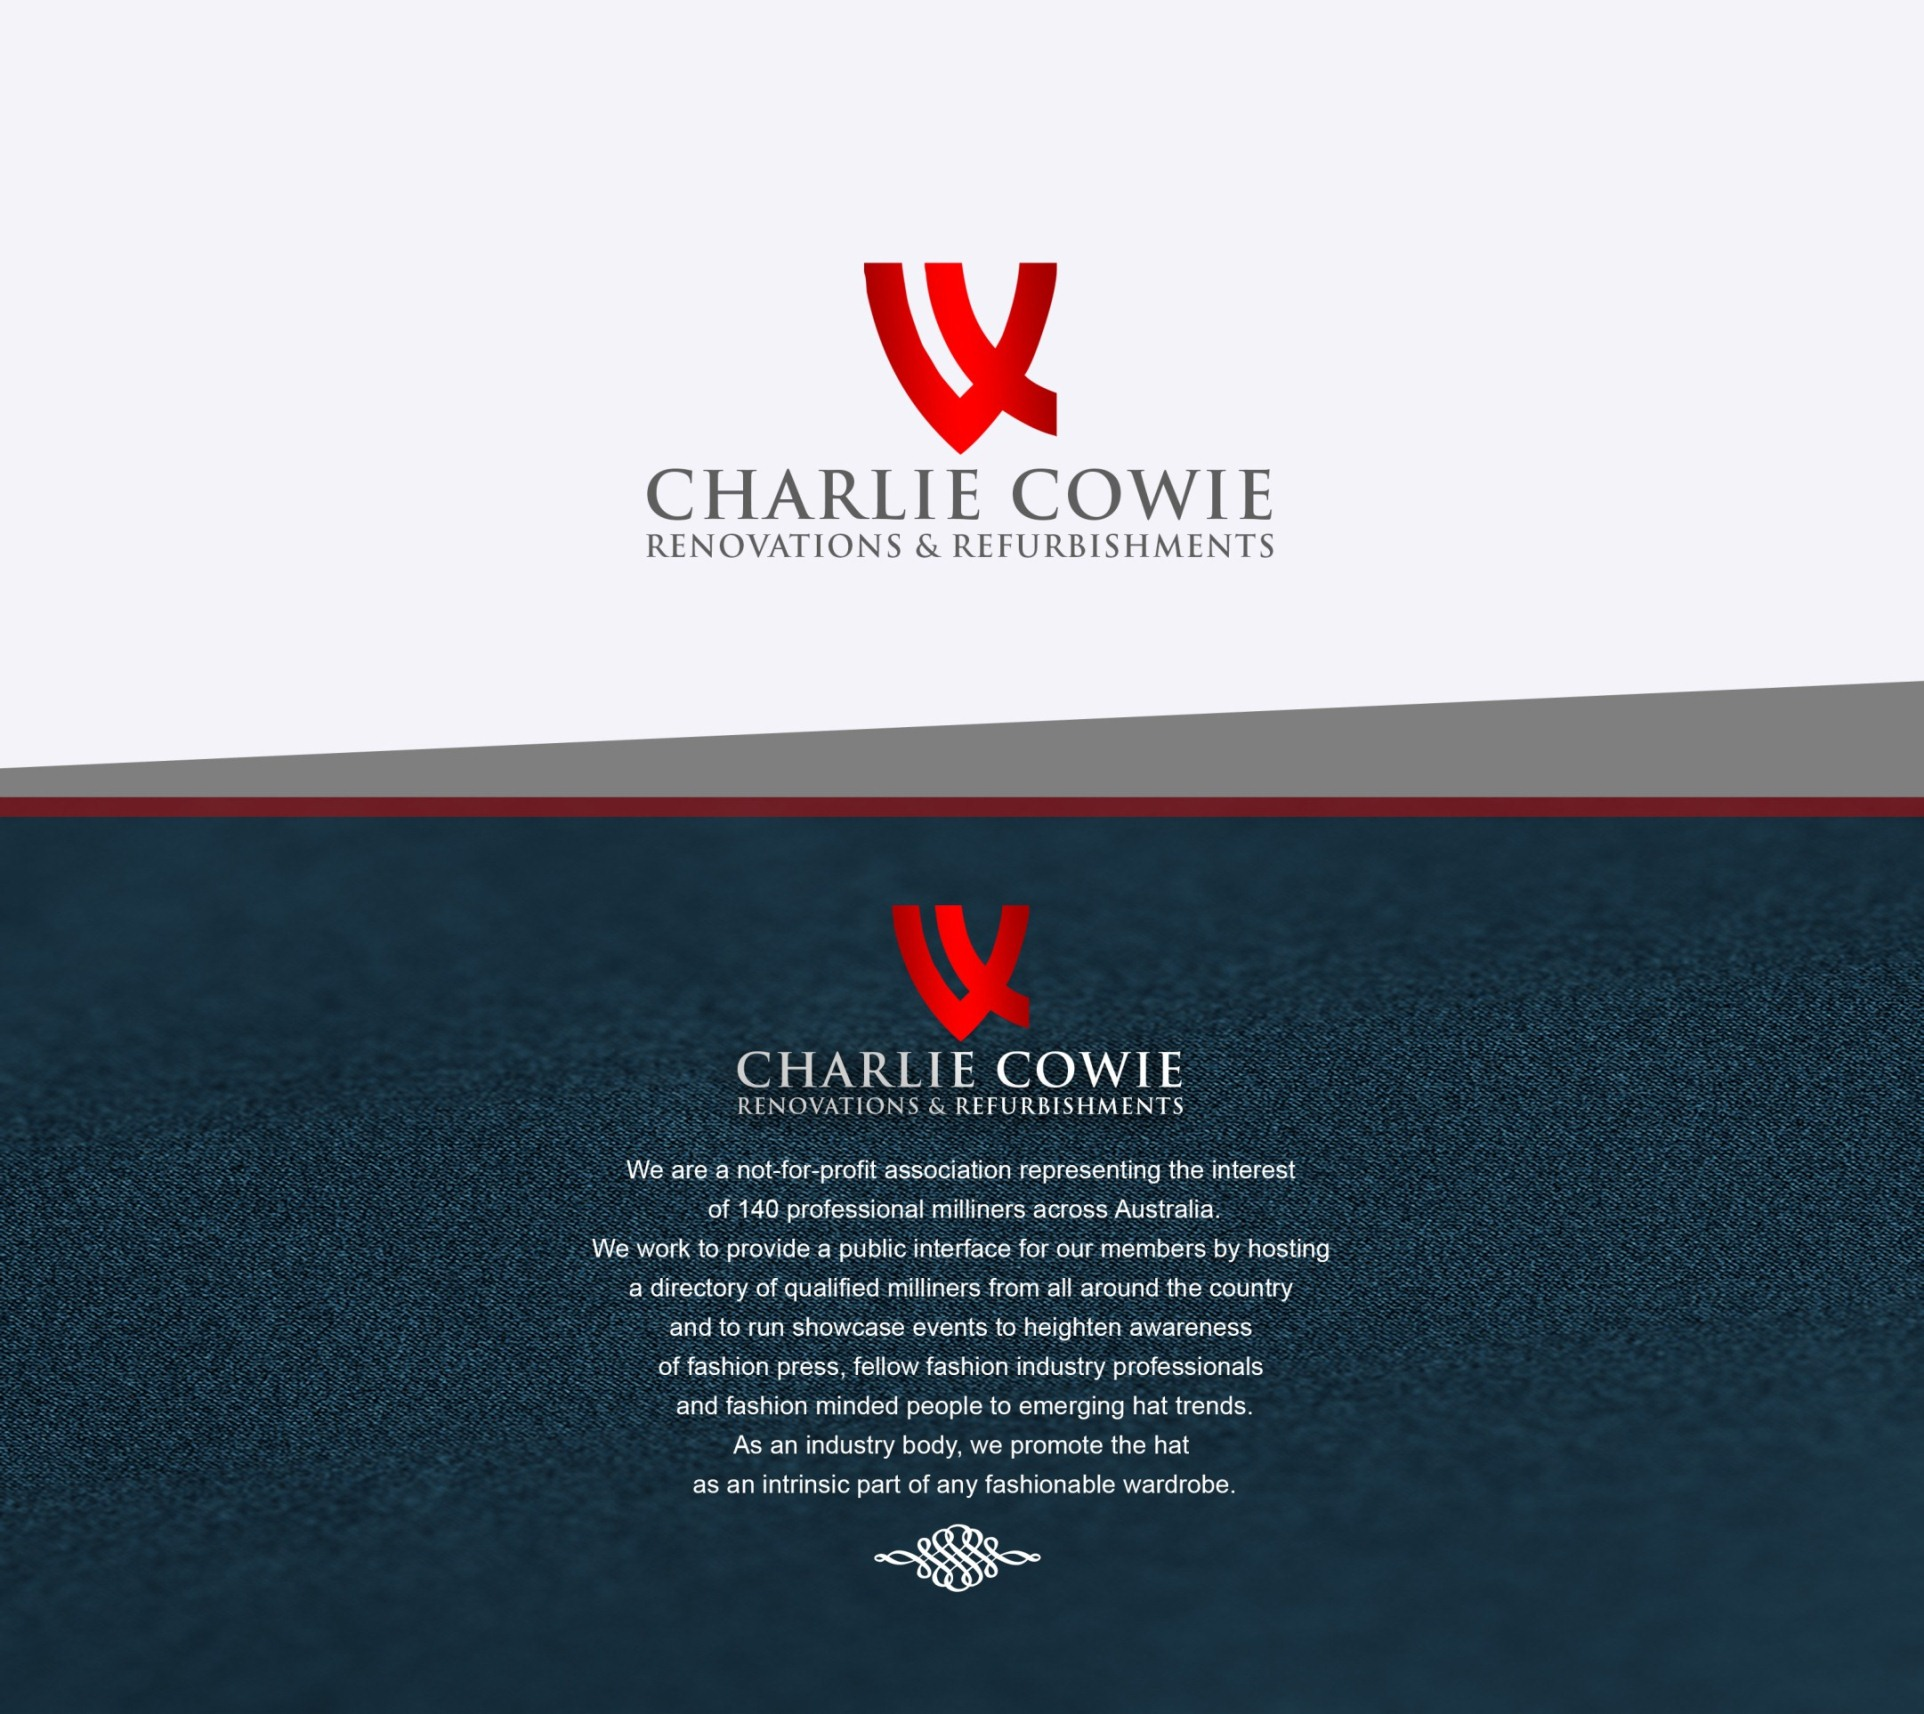 Logo Design by Rijall Blues - Entry No. 57 in the Logo Design Contest Charlie Cowie Renovations & Refurbishments Logo Design.